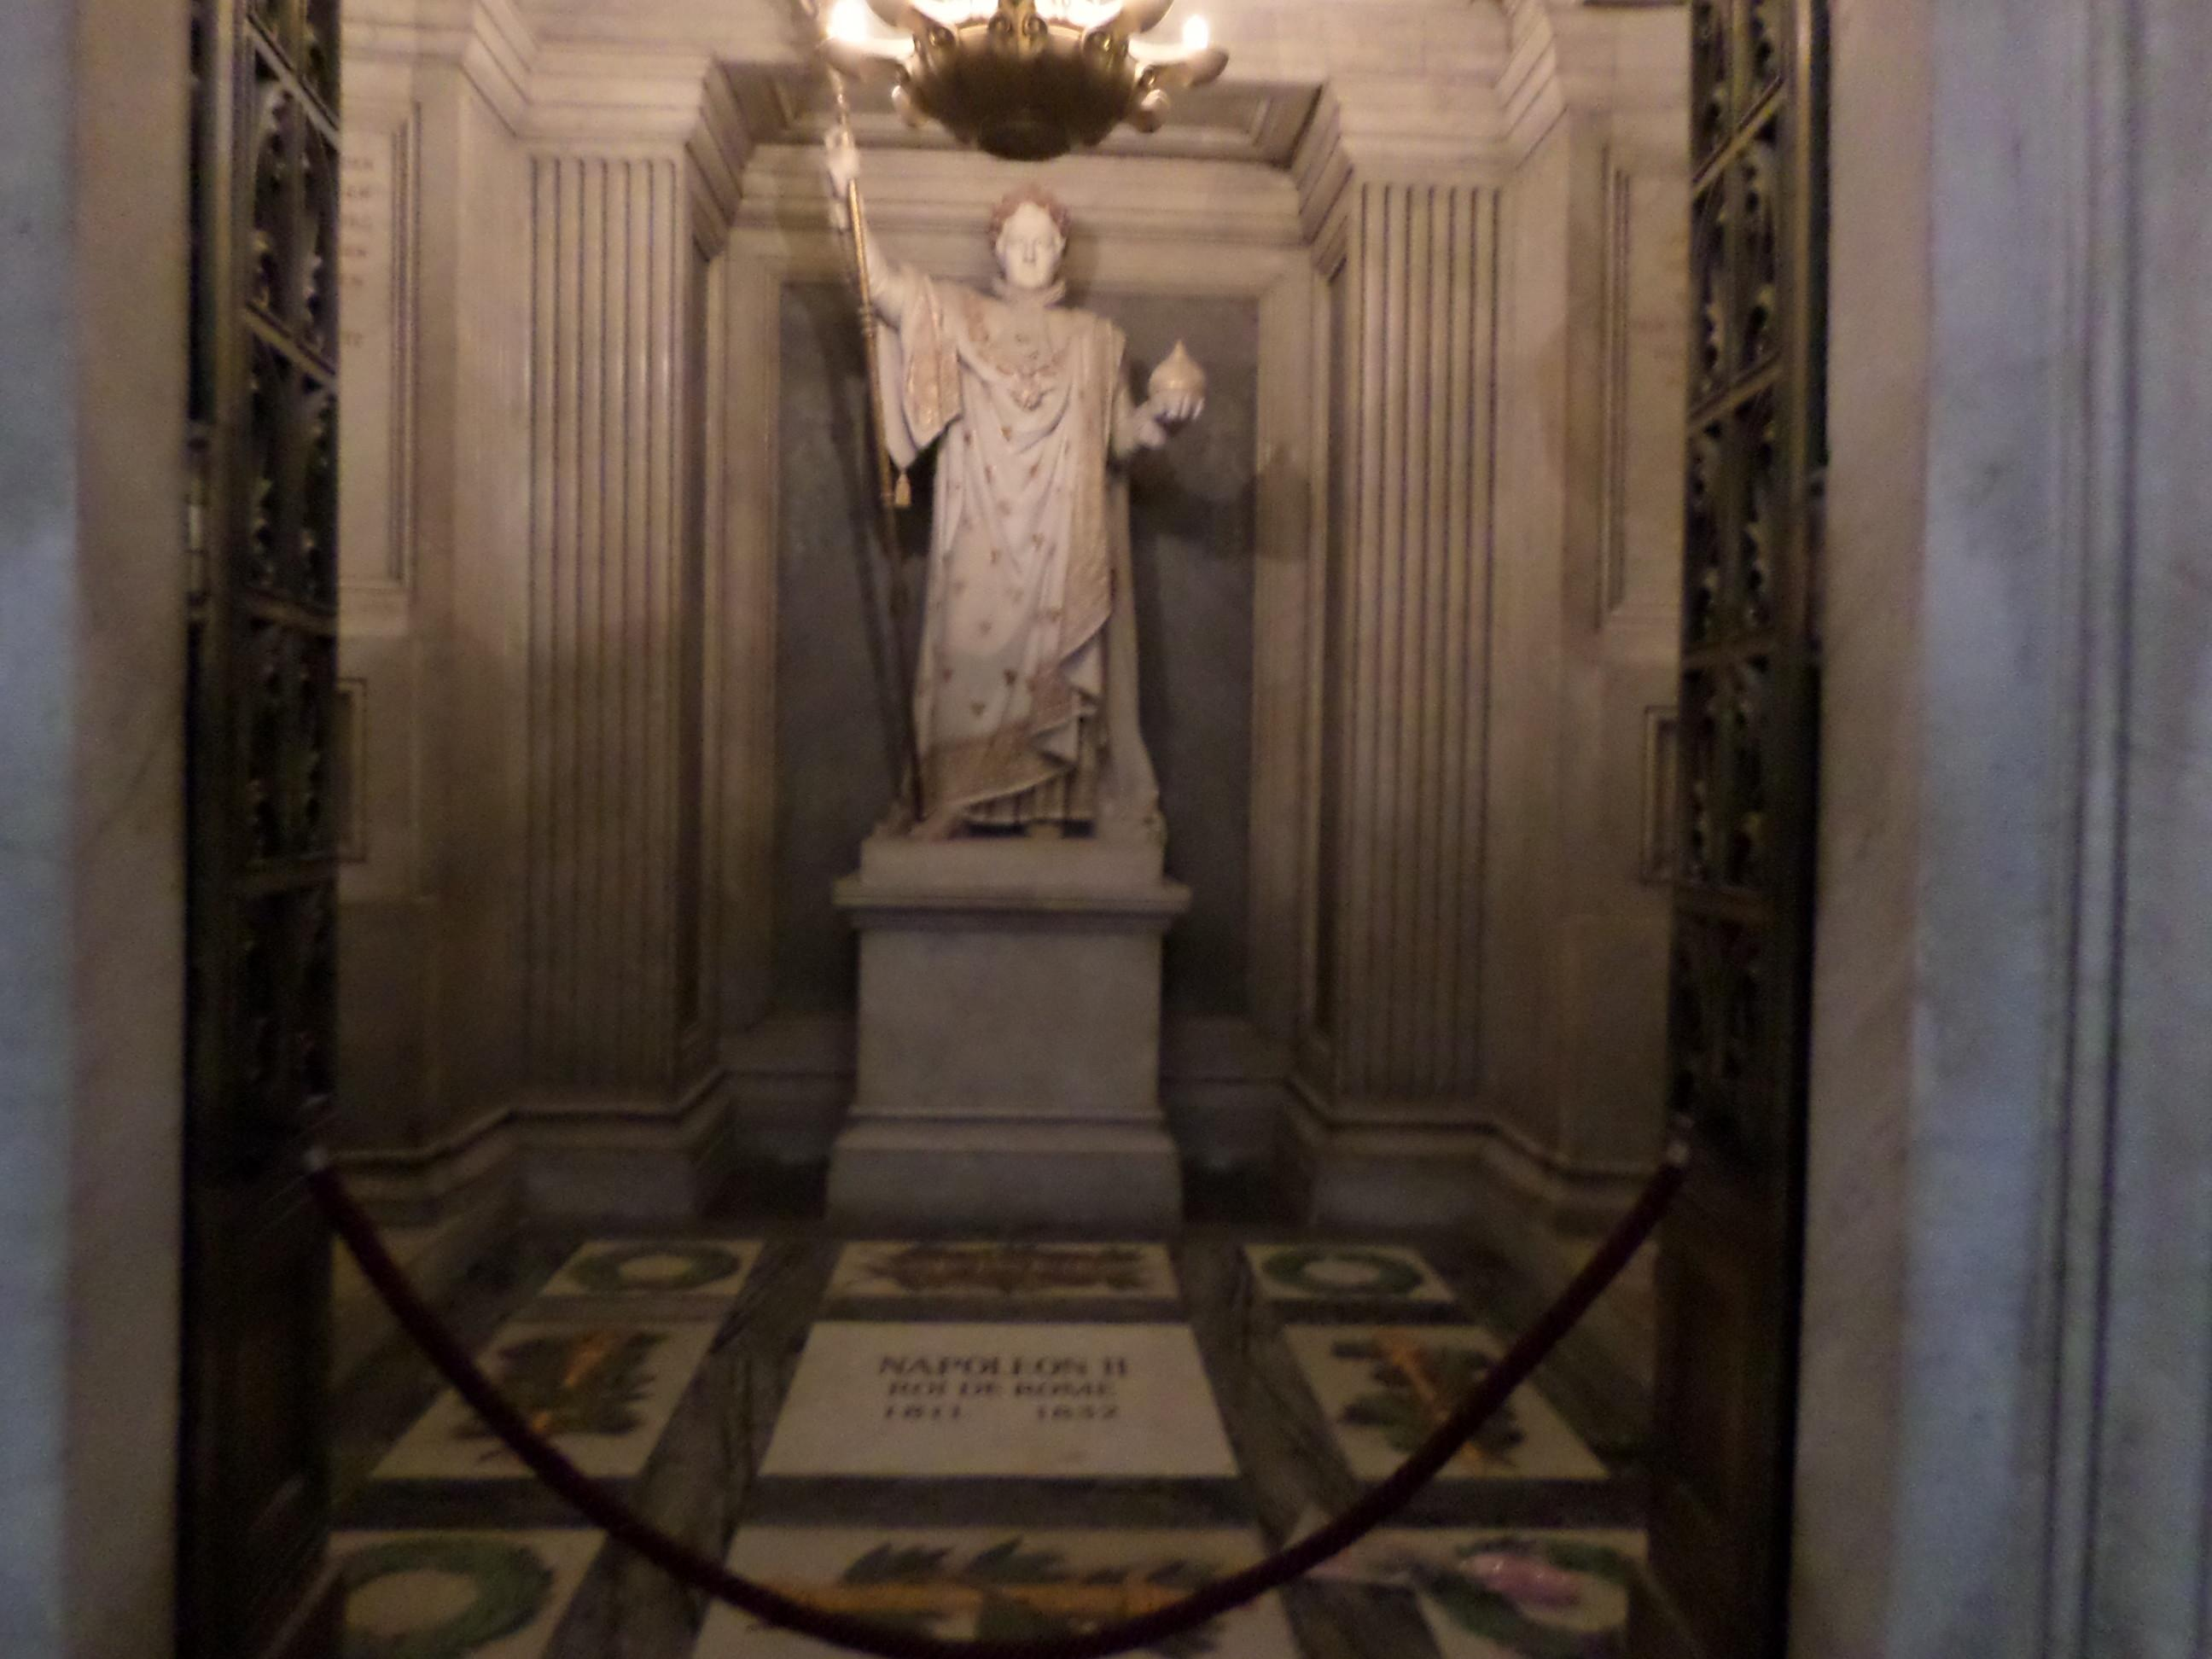 A statue of Napoleon inside his tomb declaring him the King of Rome. The tomb is within wa